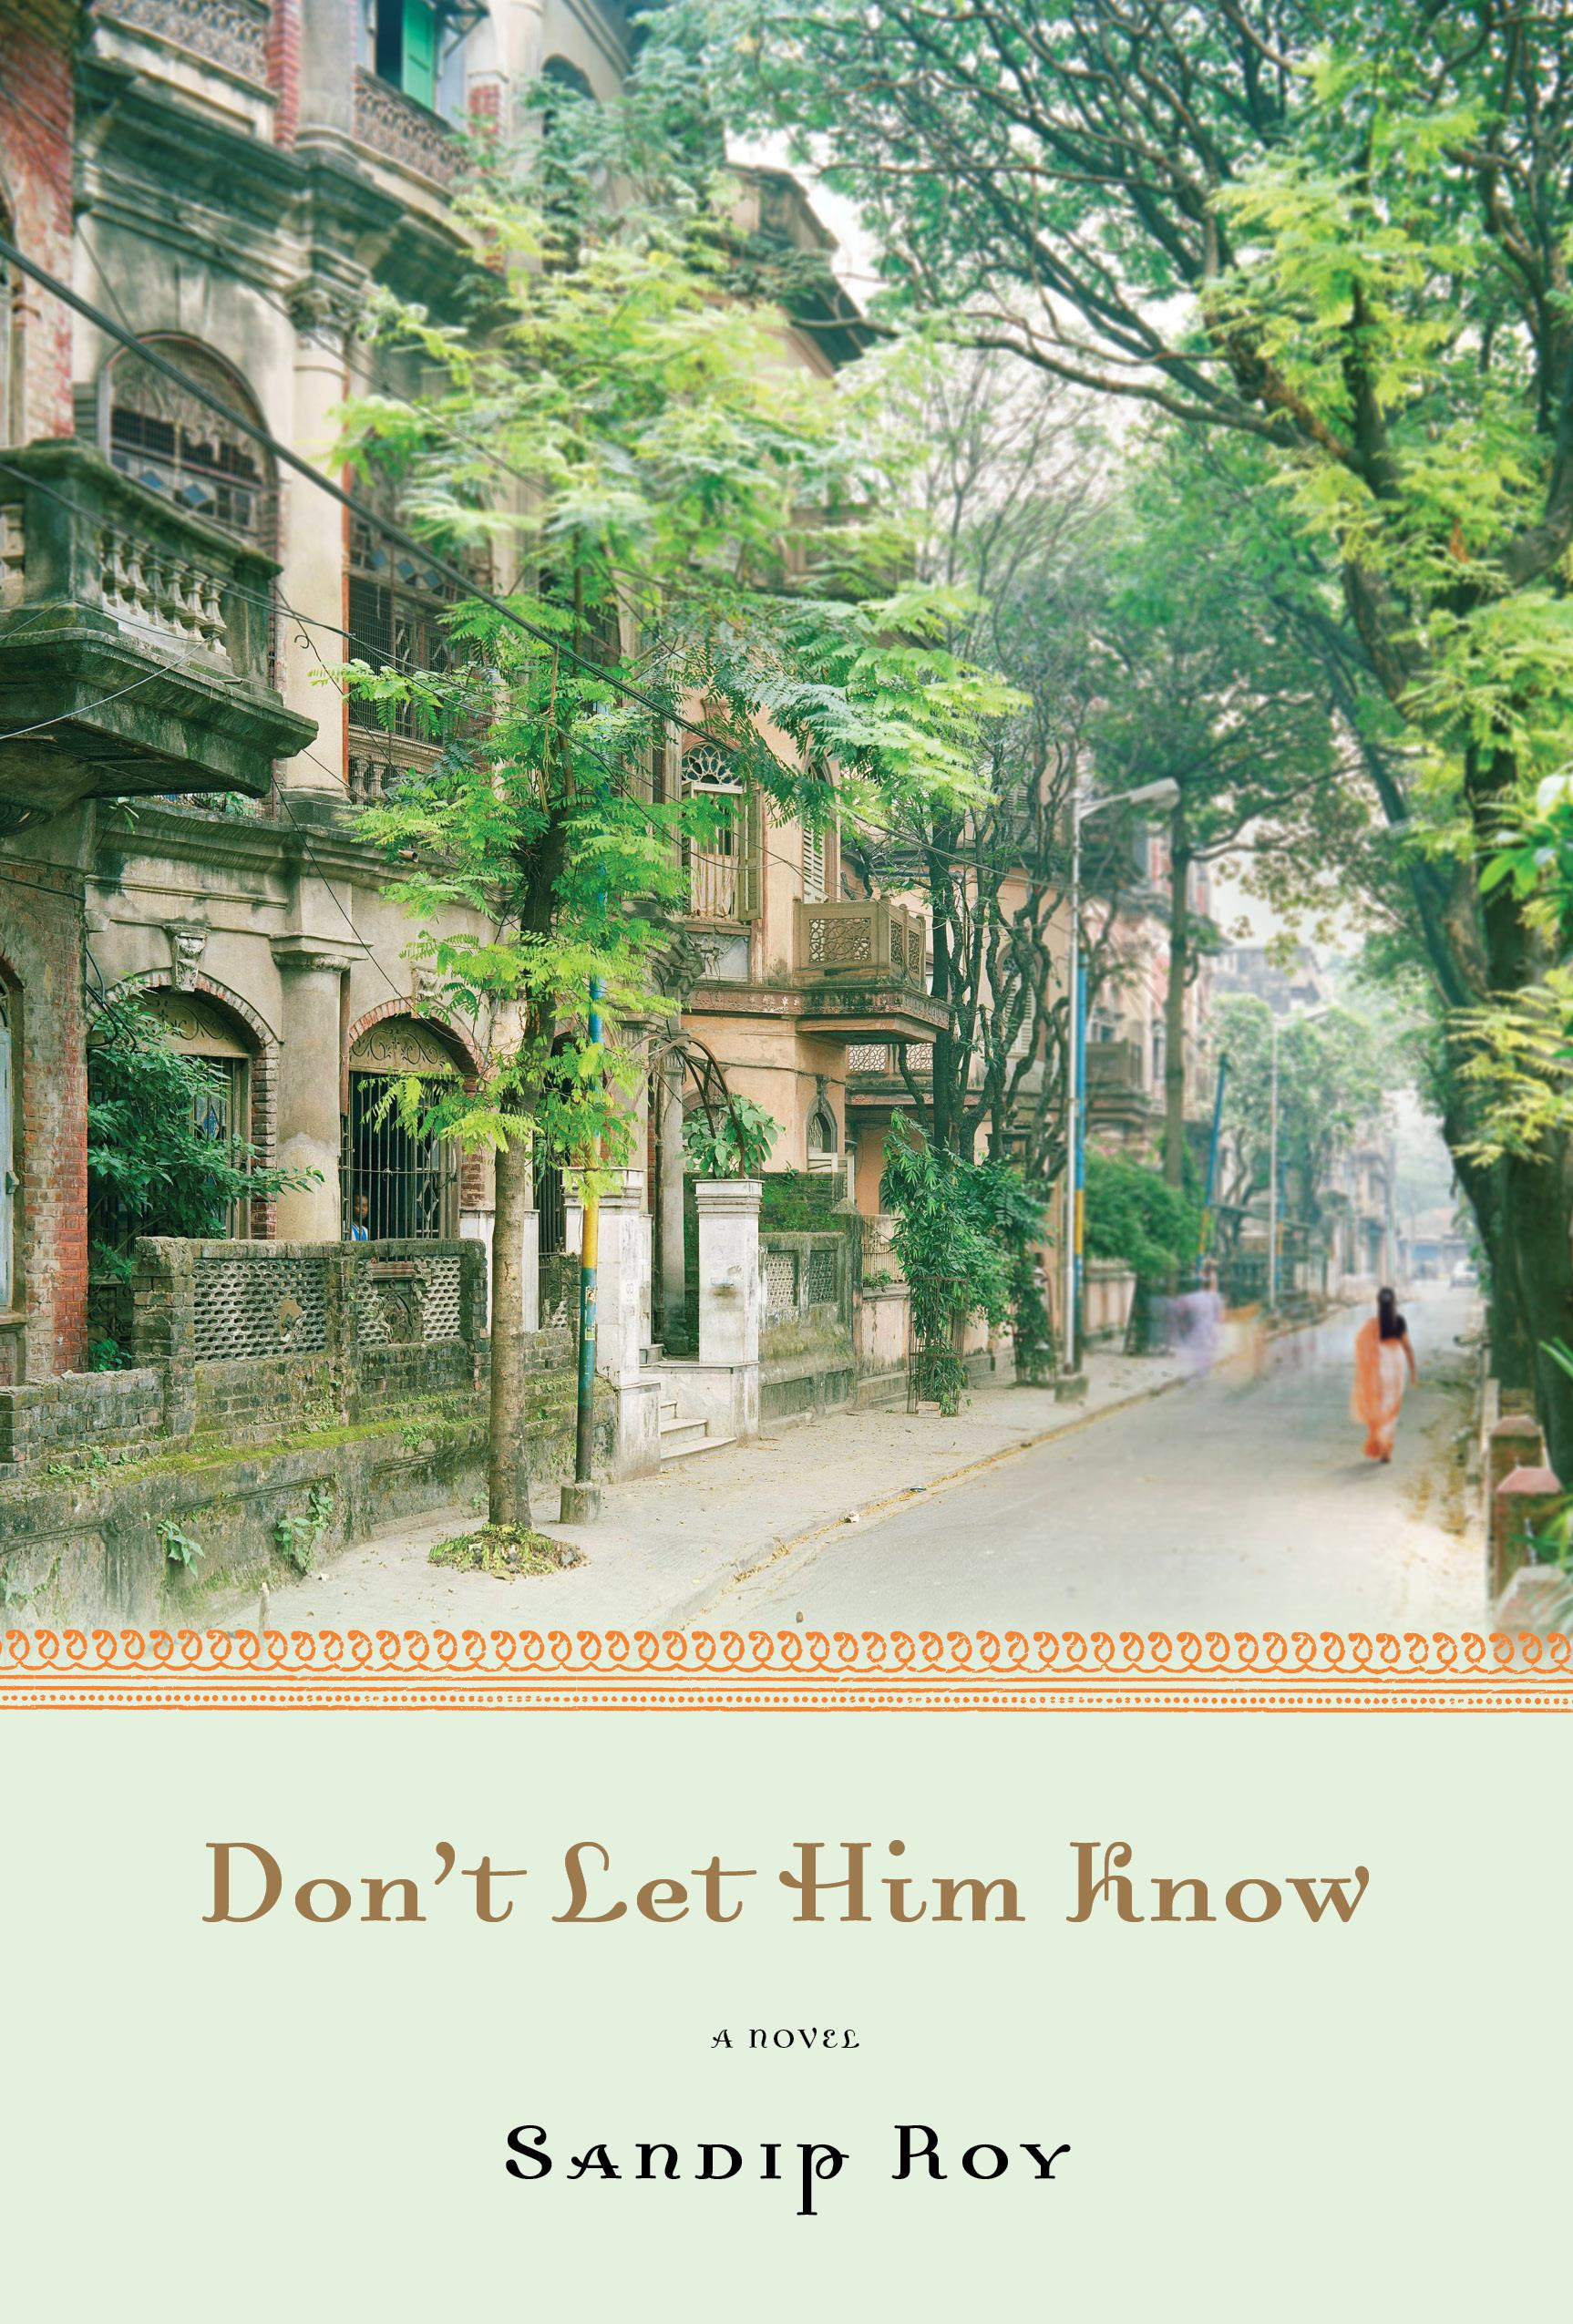 'Don't Let Him Know' by Sandip Roy